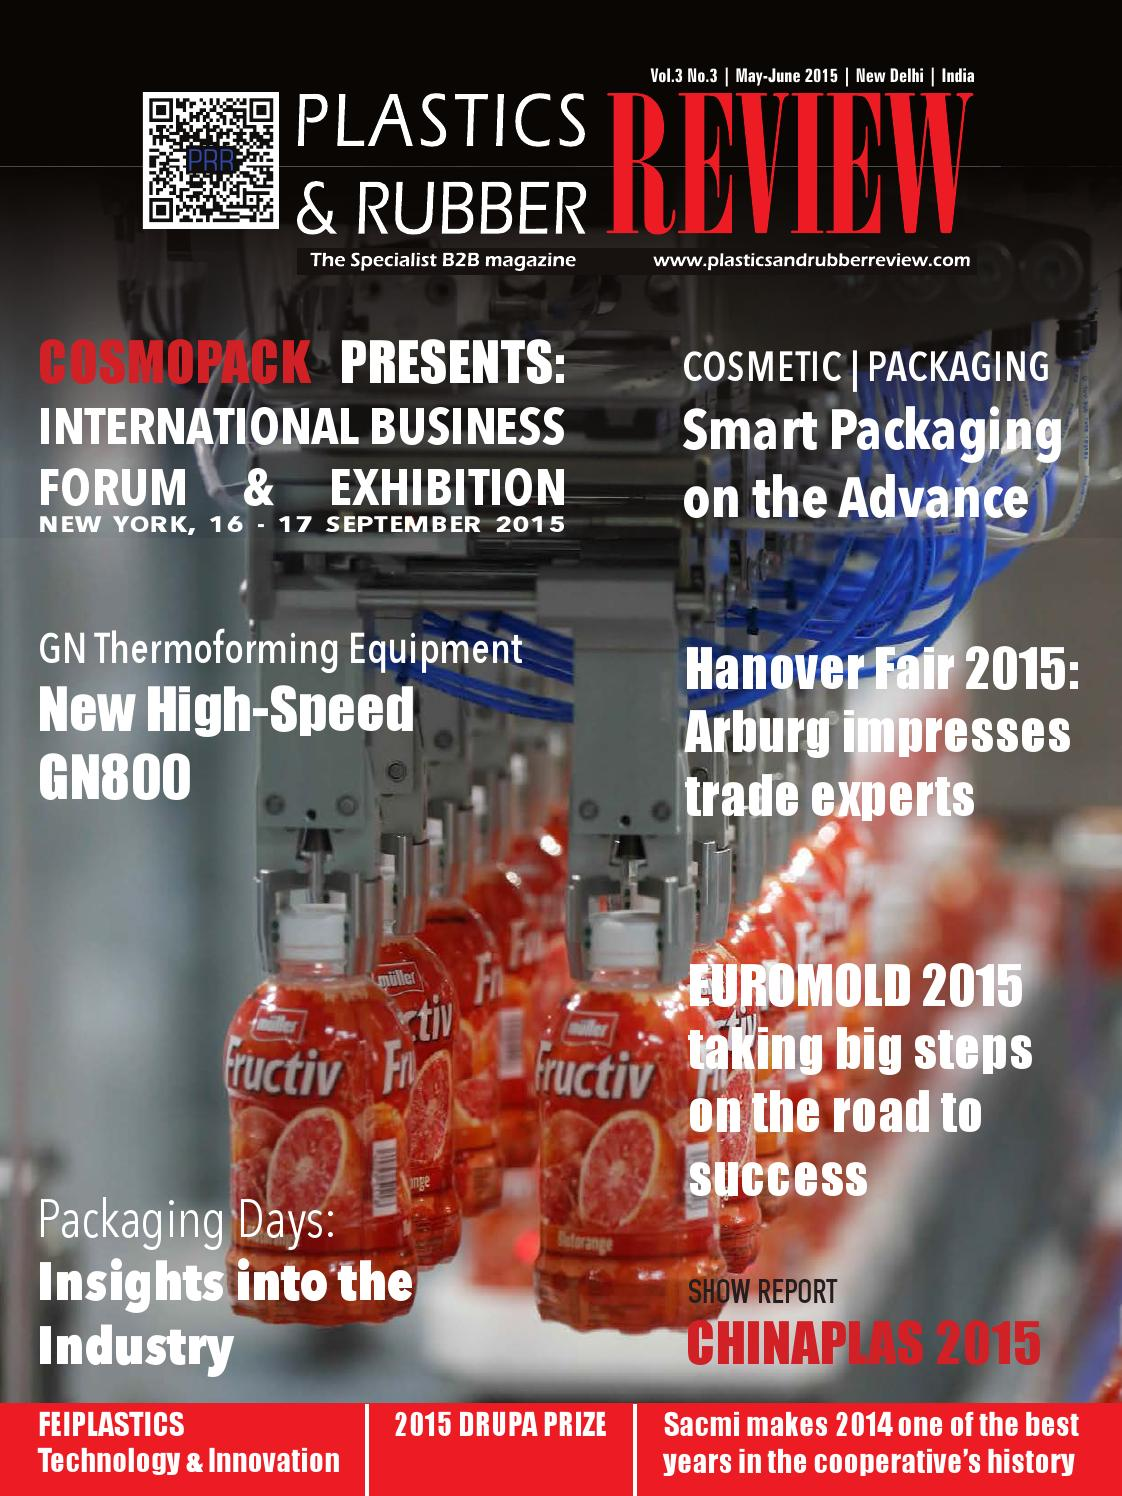 Plastics & Rubber Review', May-June 2015 by Worldwide